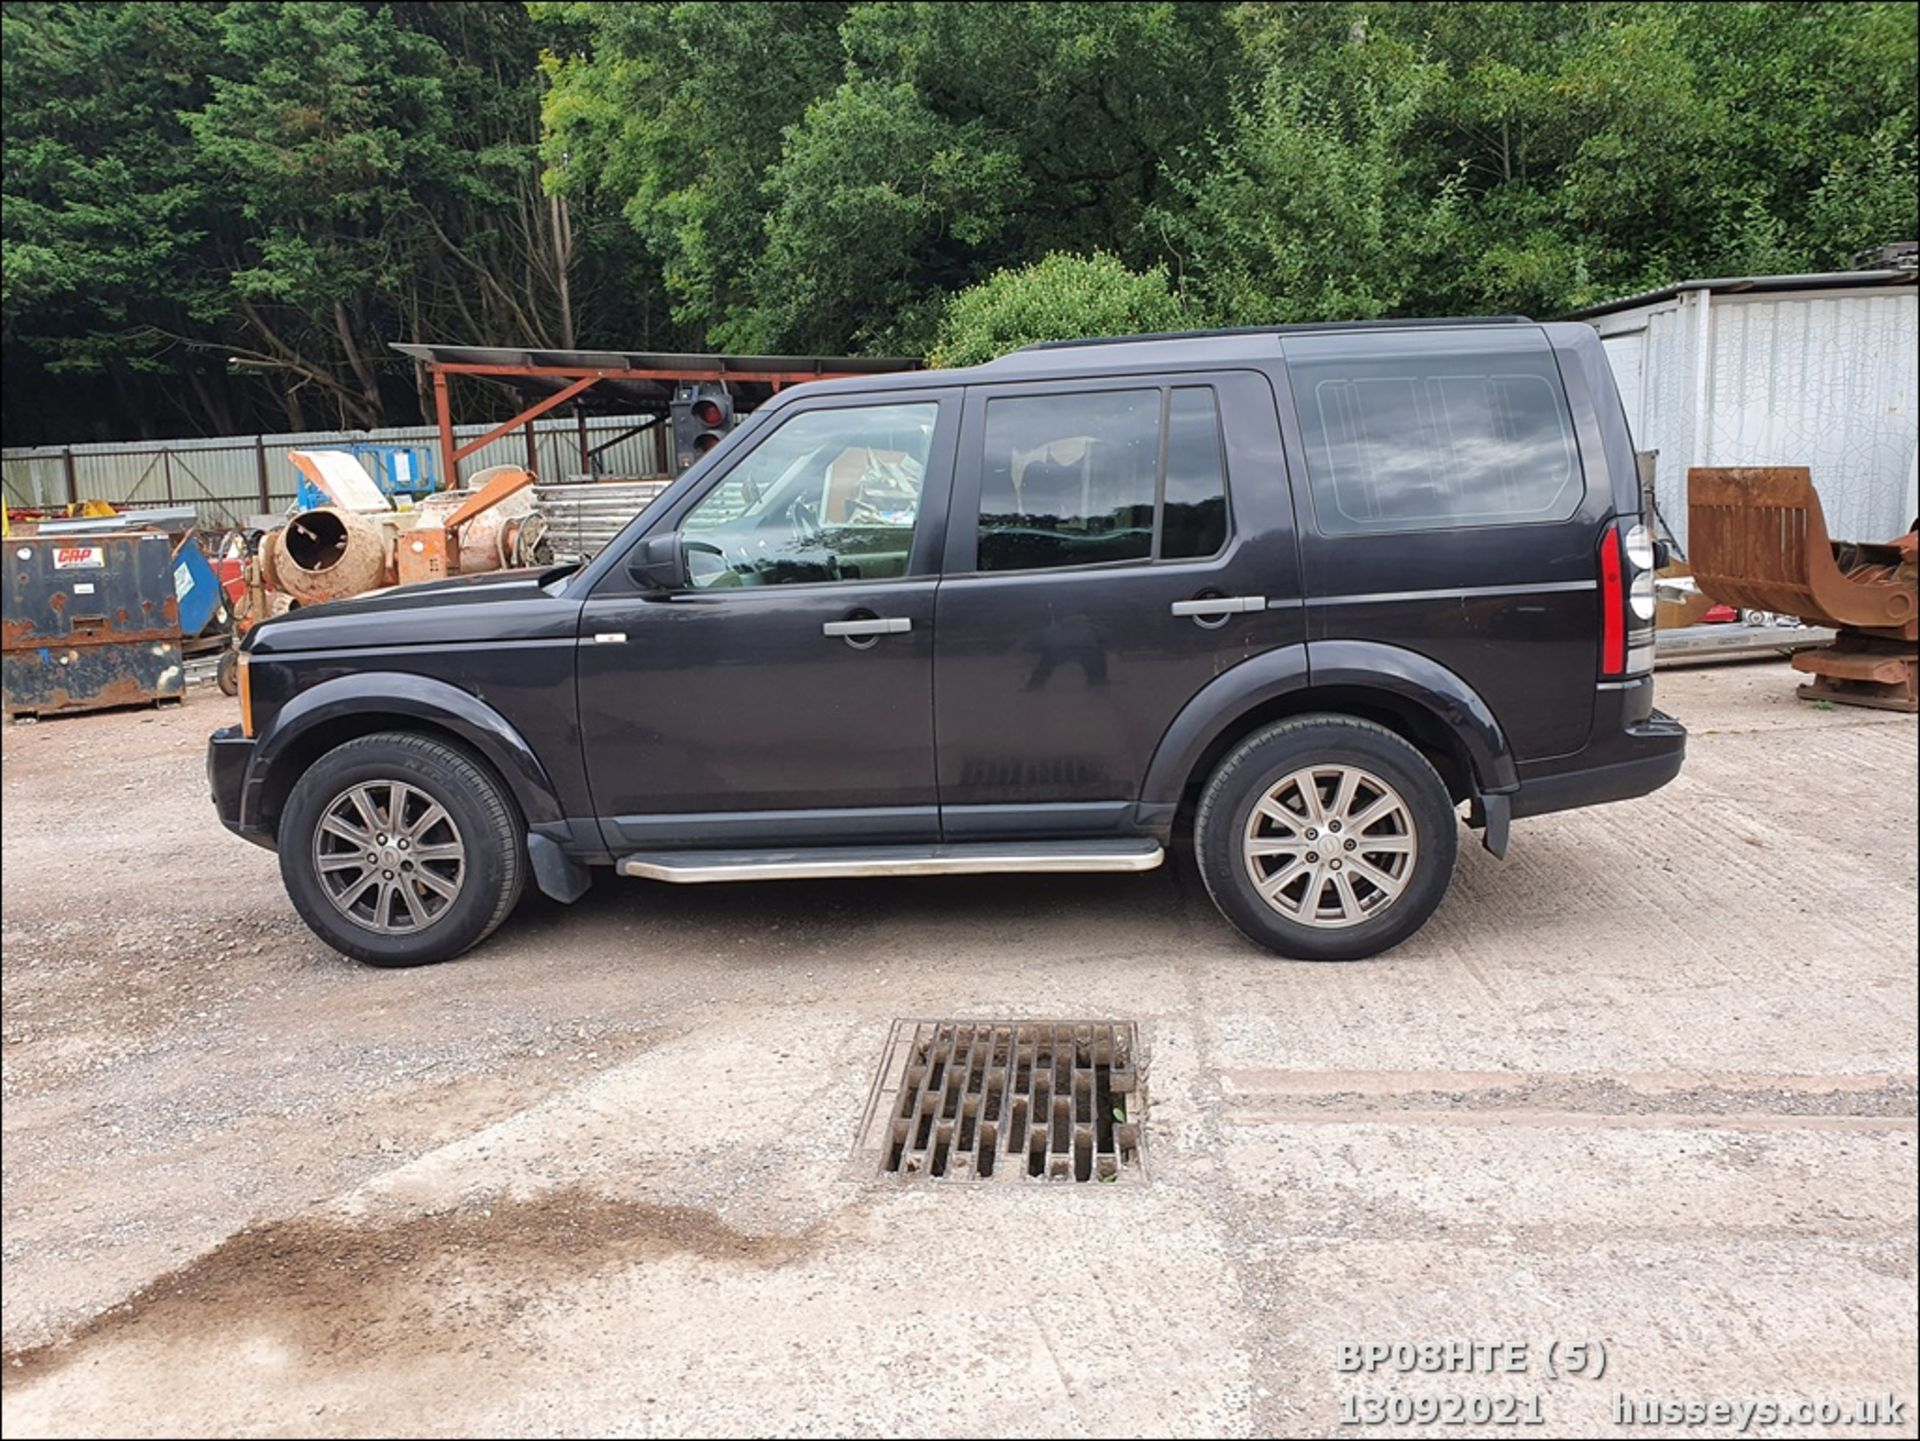 08/08 LAND ROVER DISCOVERY TDV6 SE A - 2720cc 5dr Estate (Brown, 190k) - Image 5 of 18